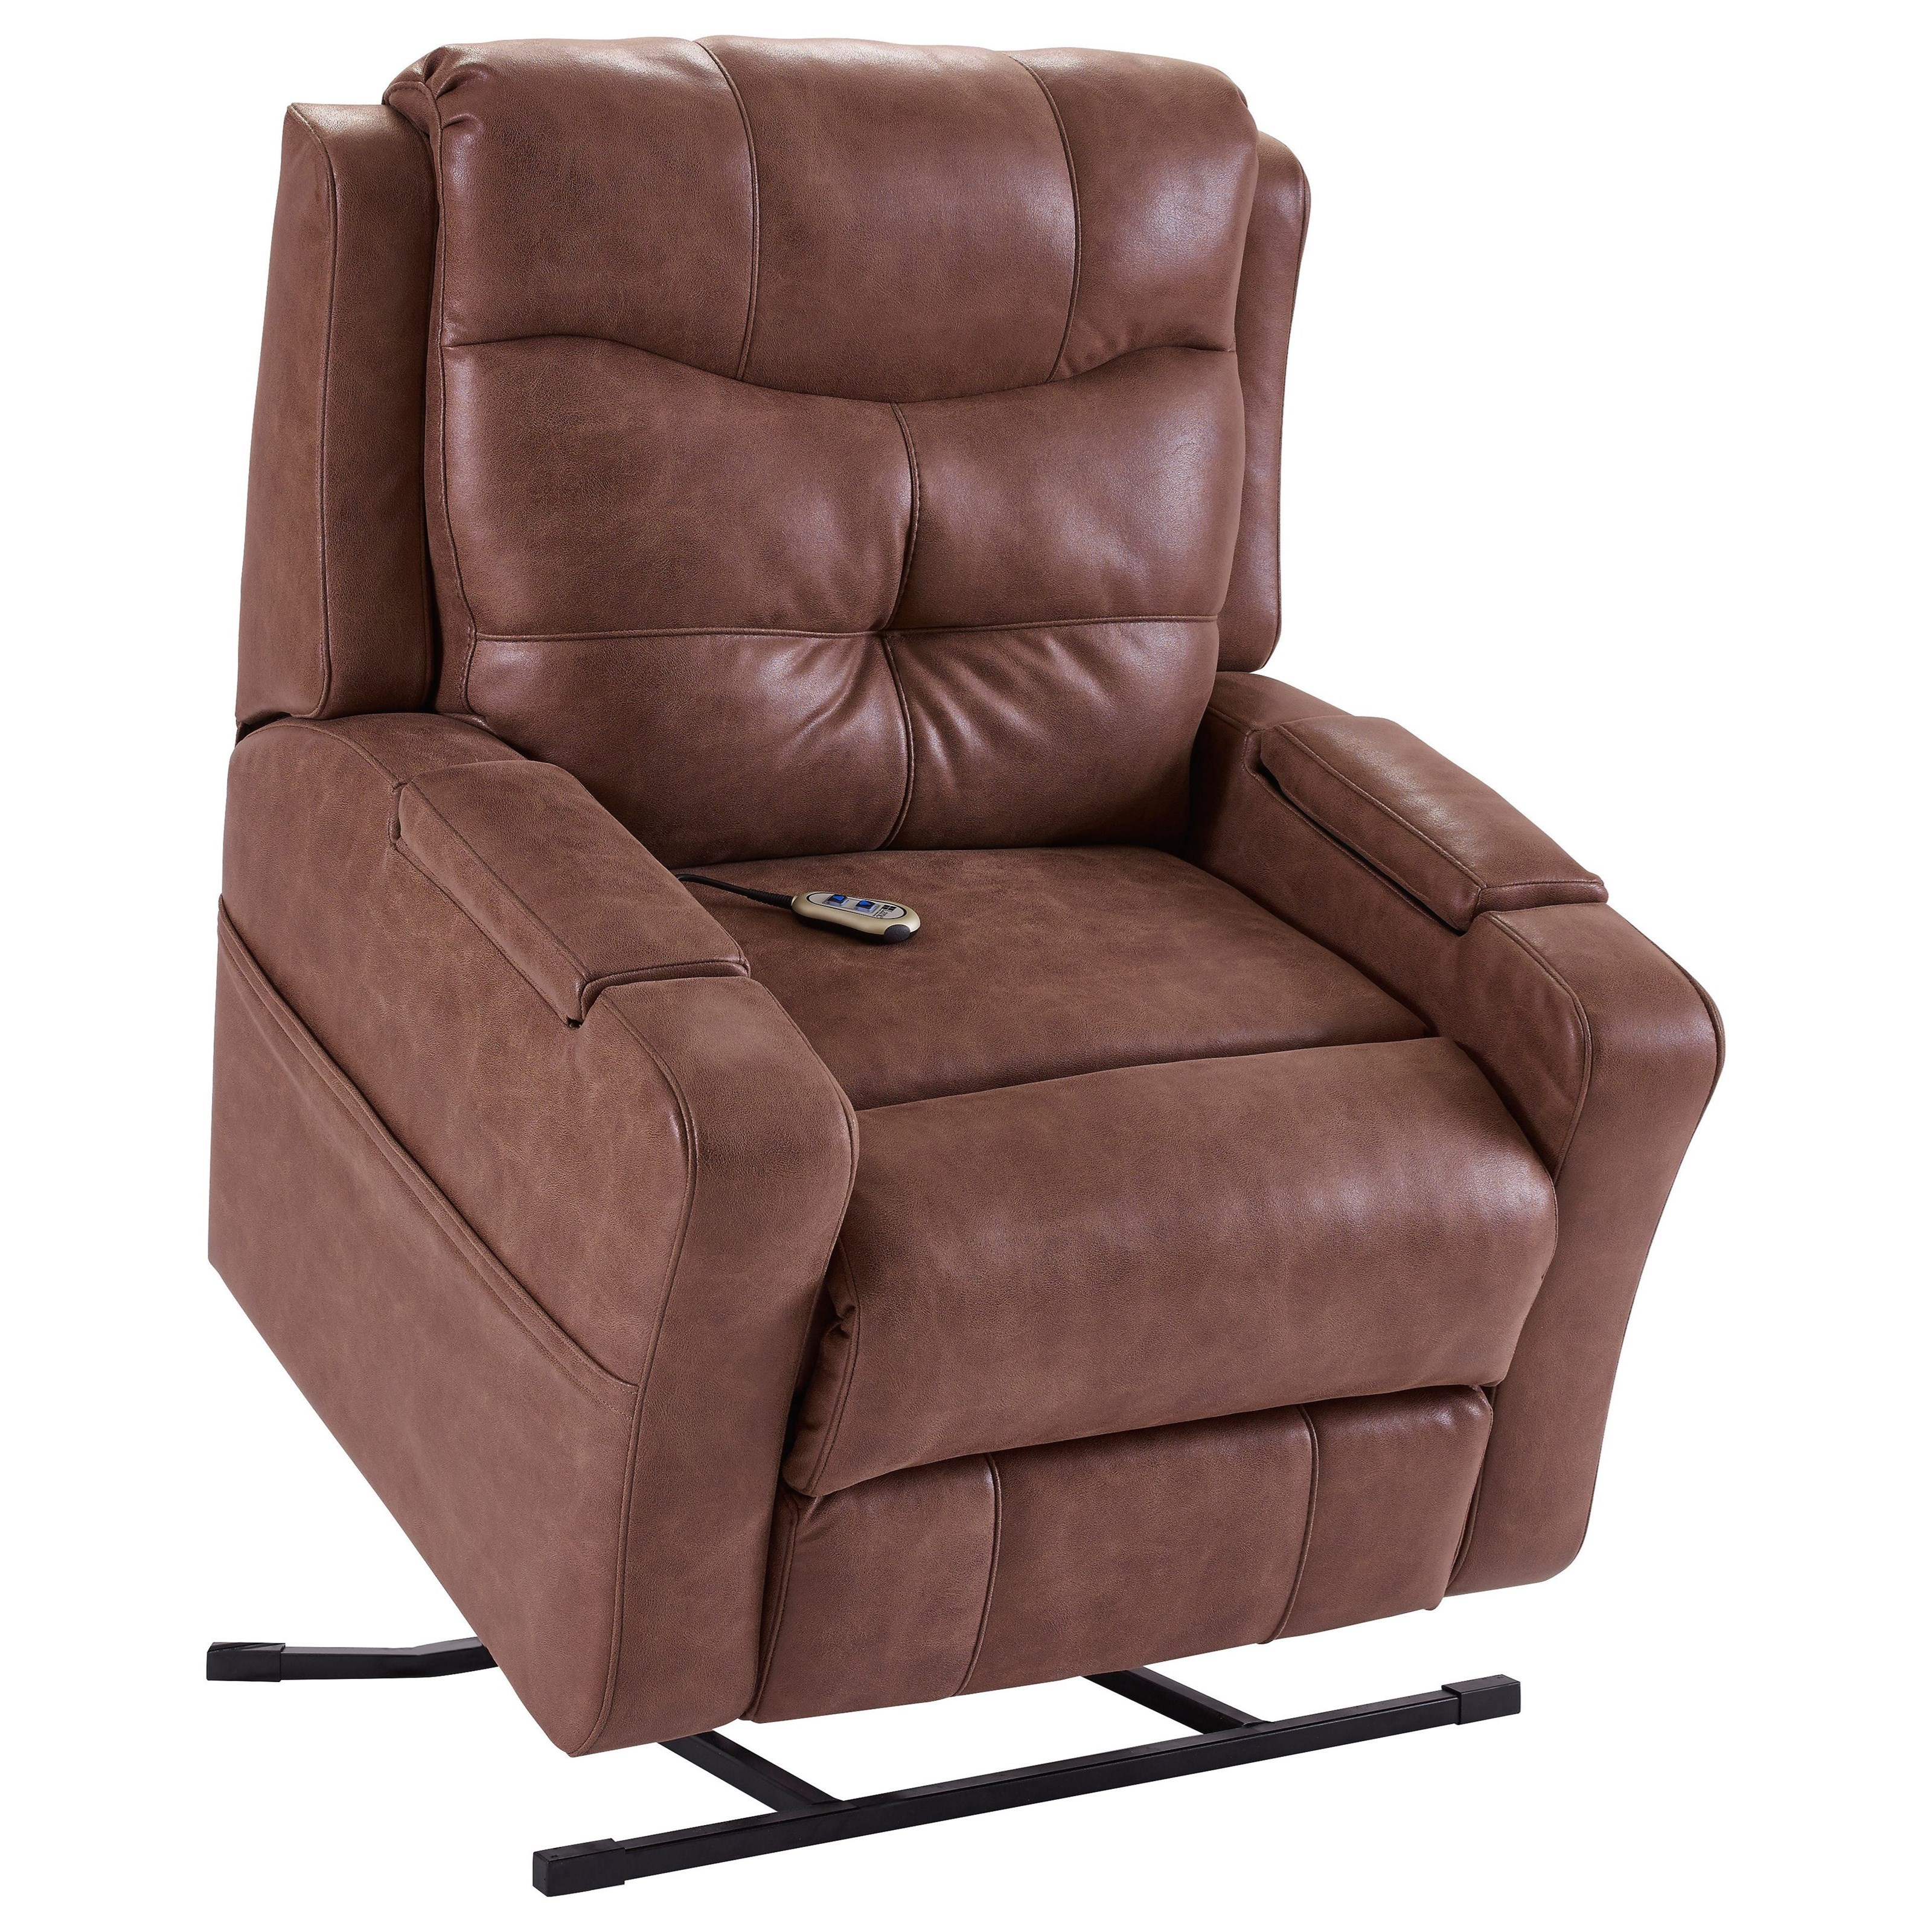 Lane miguel power lift recliner with heat and massage for Recliner lift chair